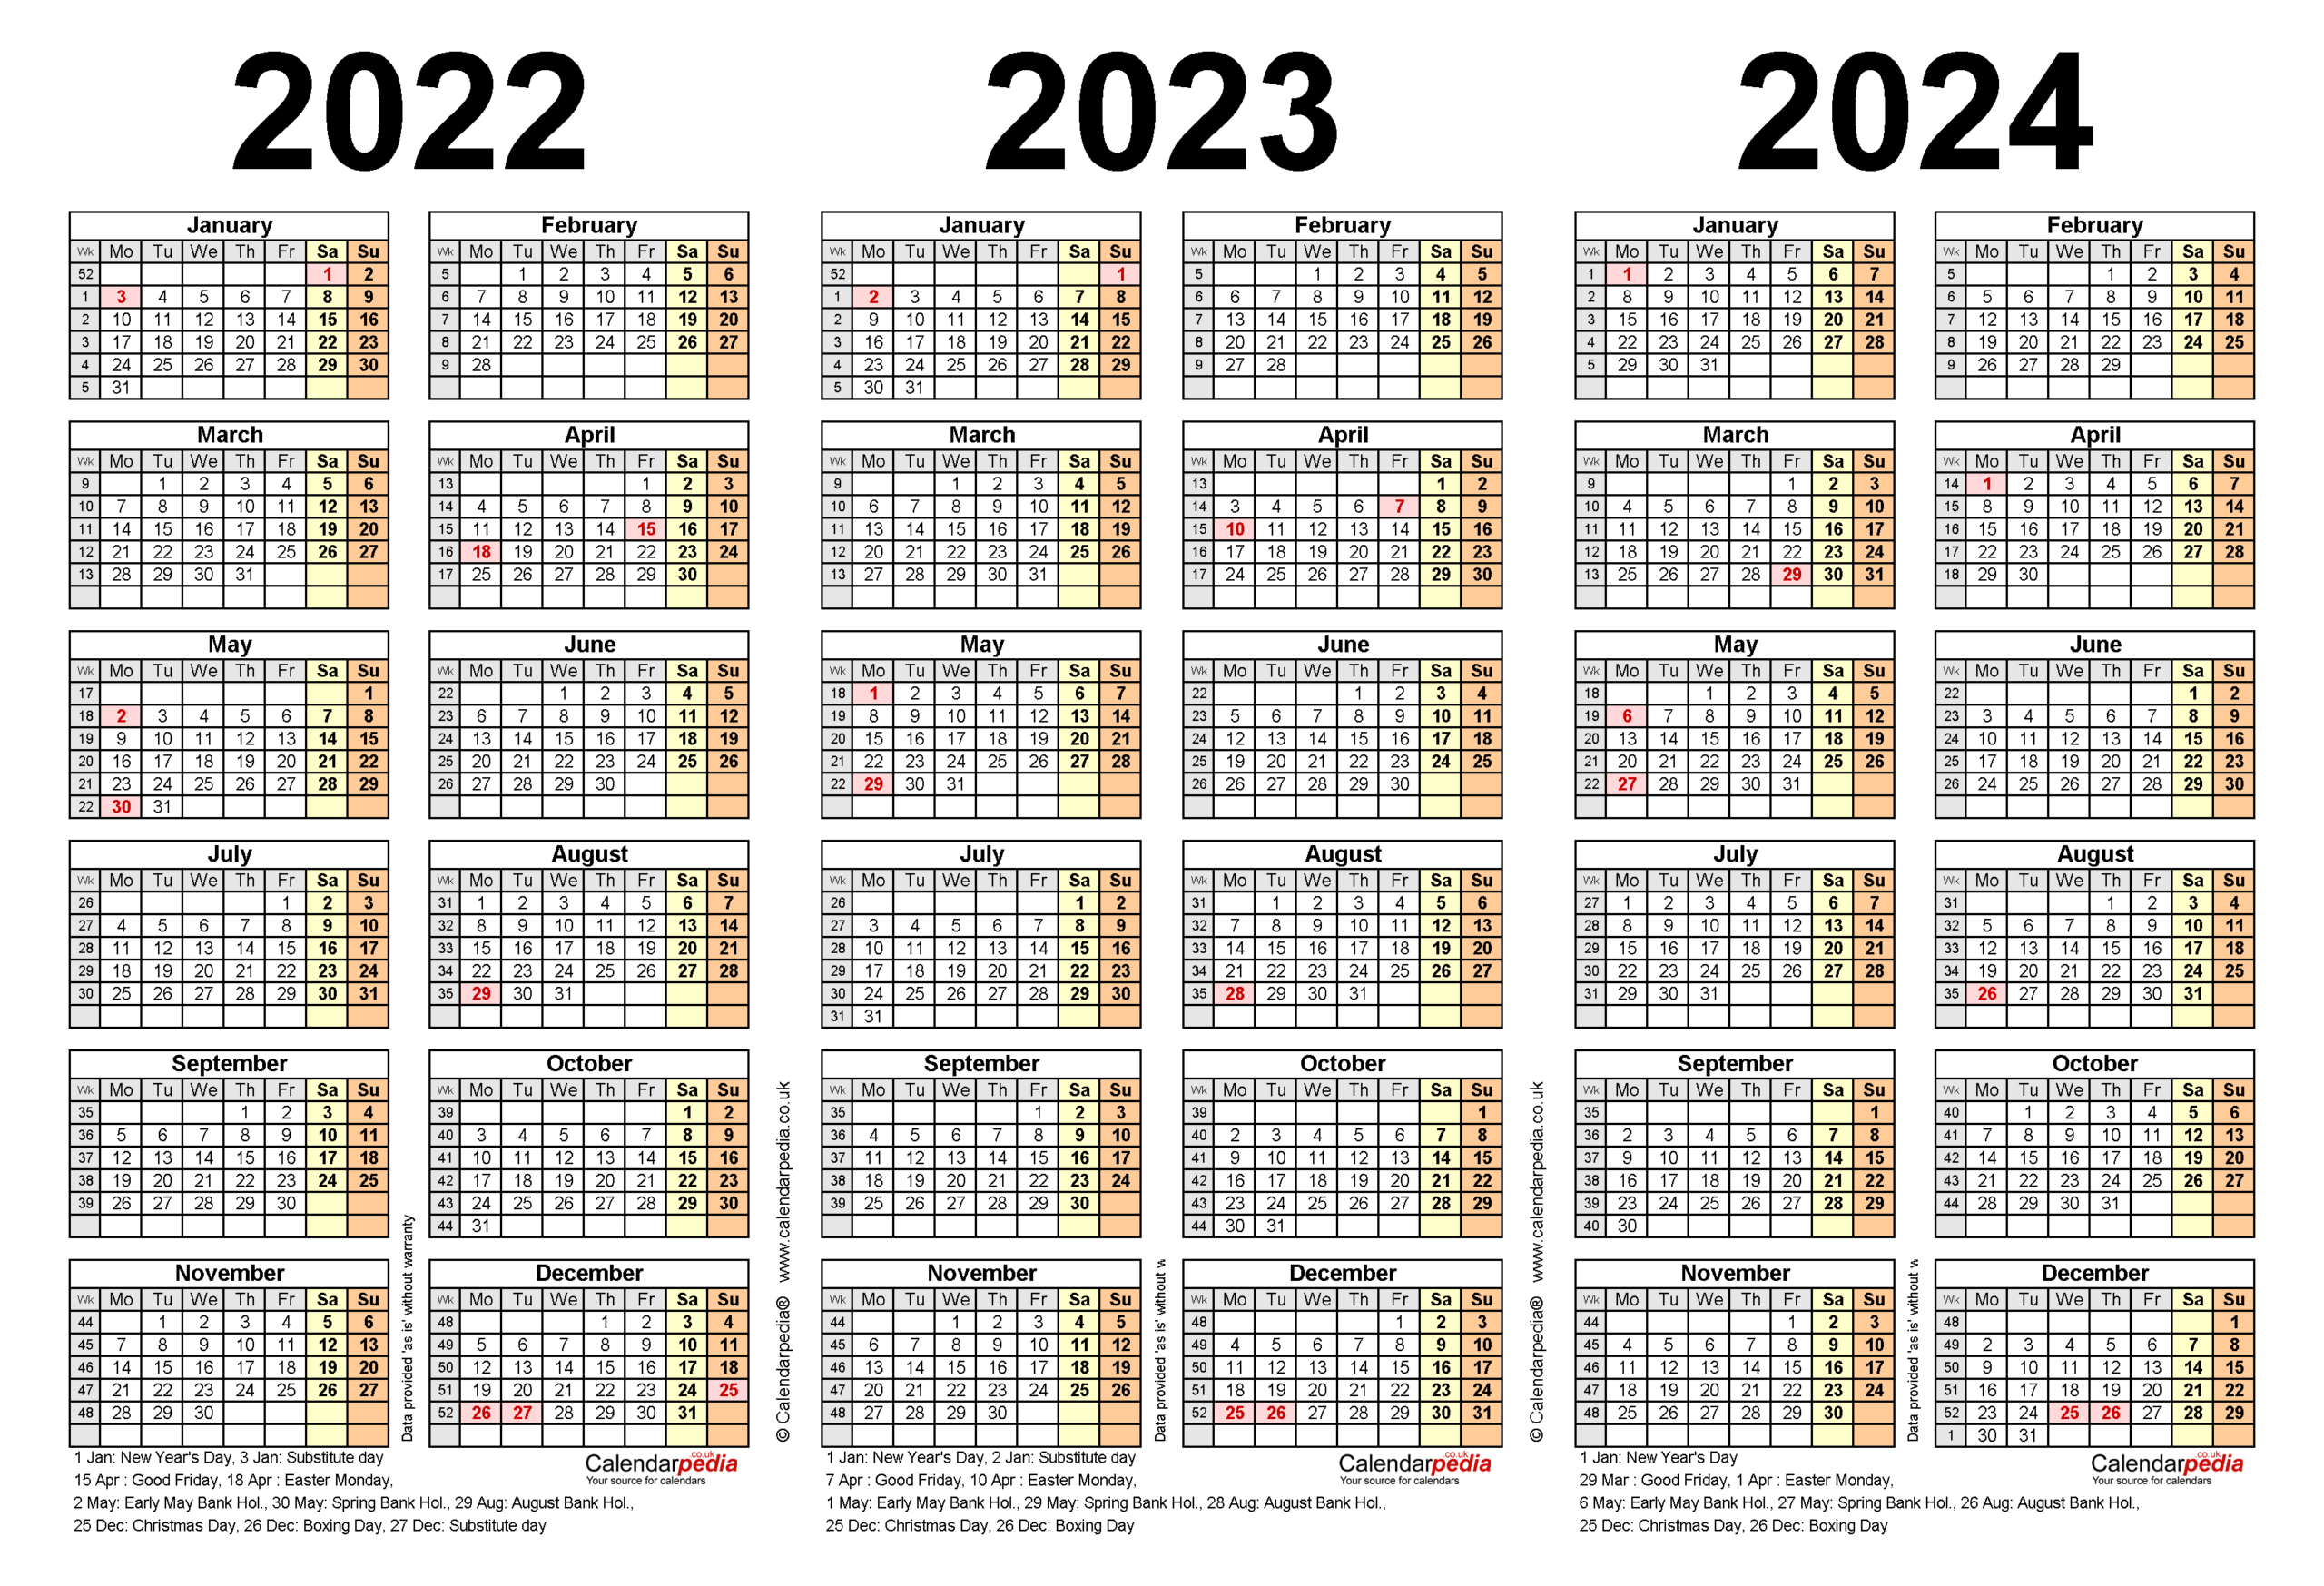 Three Year Calendars For 2022, 2023 & 2024 (Uk) For Excel